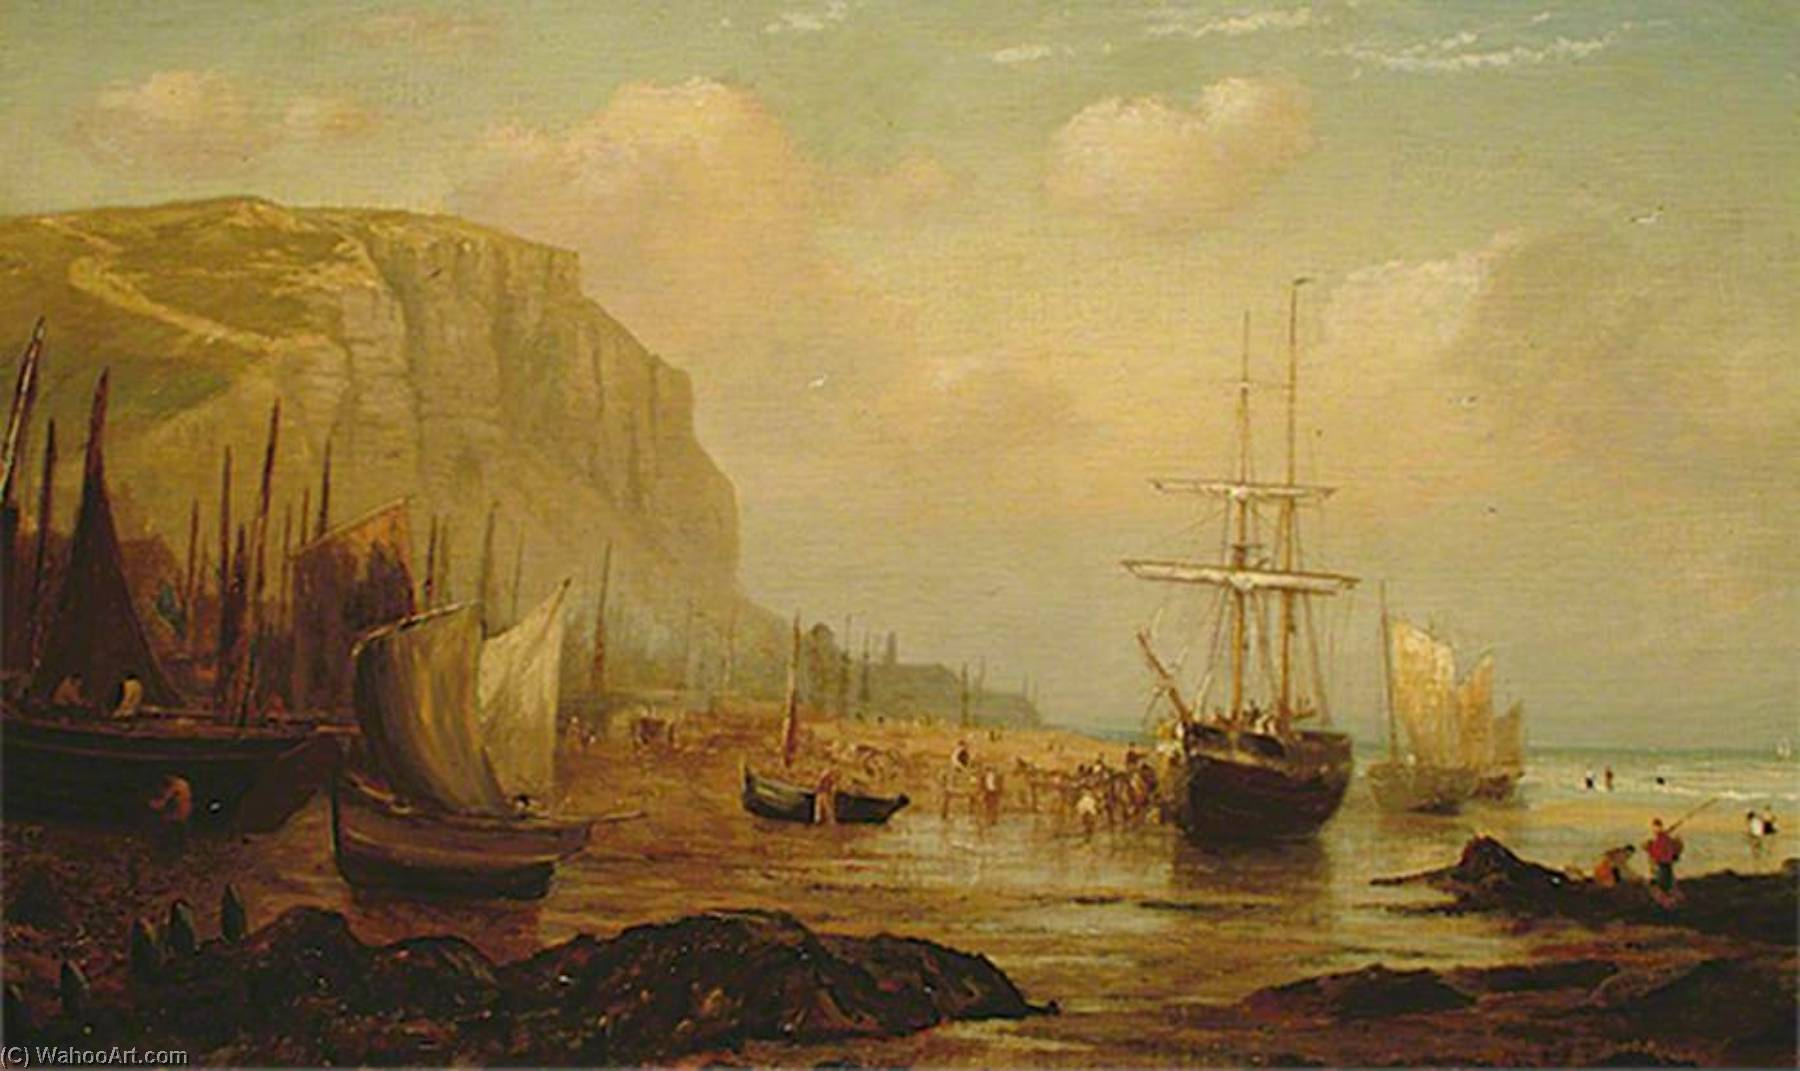 East Cliff, Hastings, East Sussex, and Fishing Vessels, 1860 by William Henry Borrow | Art Reproduction | WahooArt.com